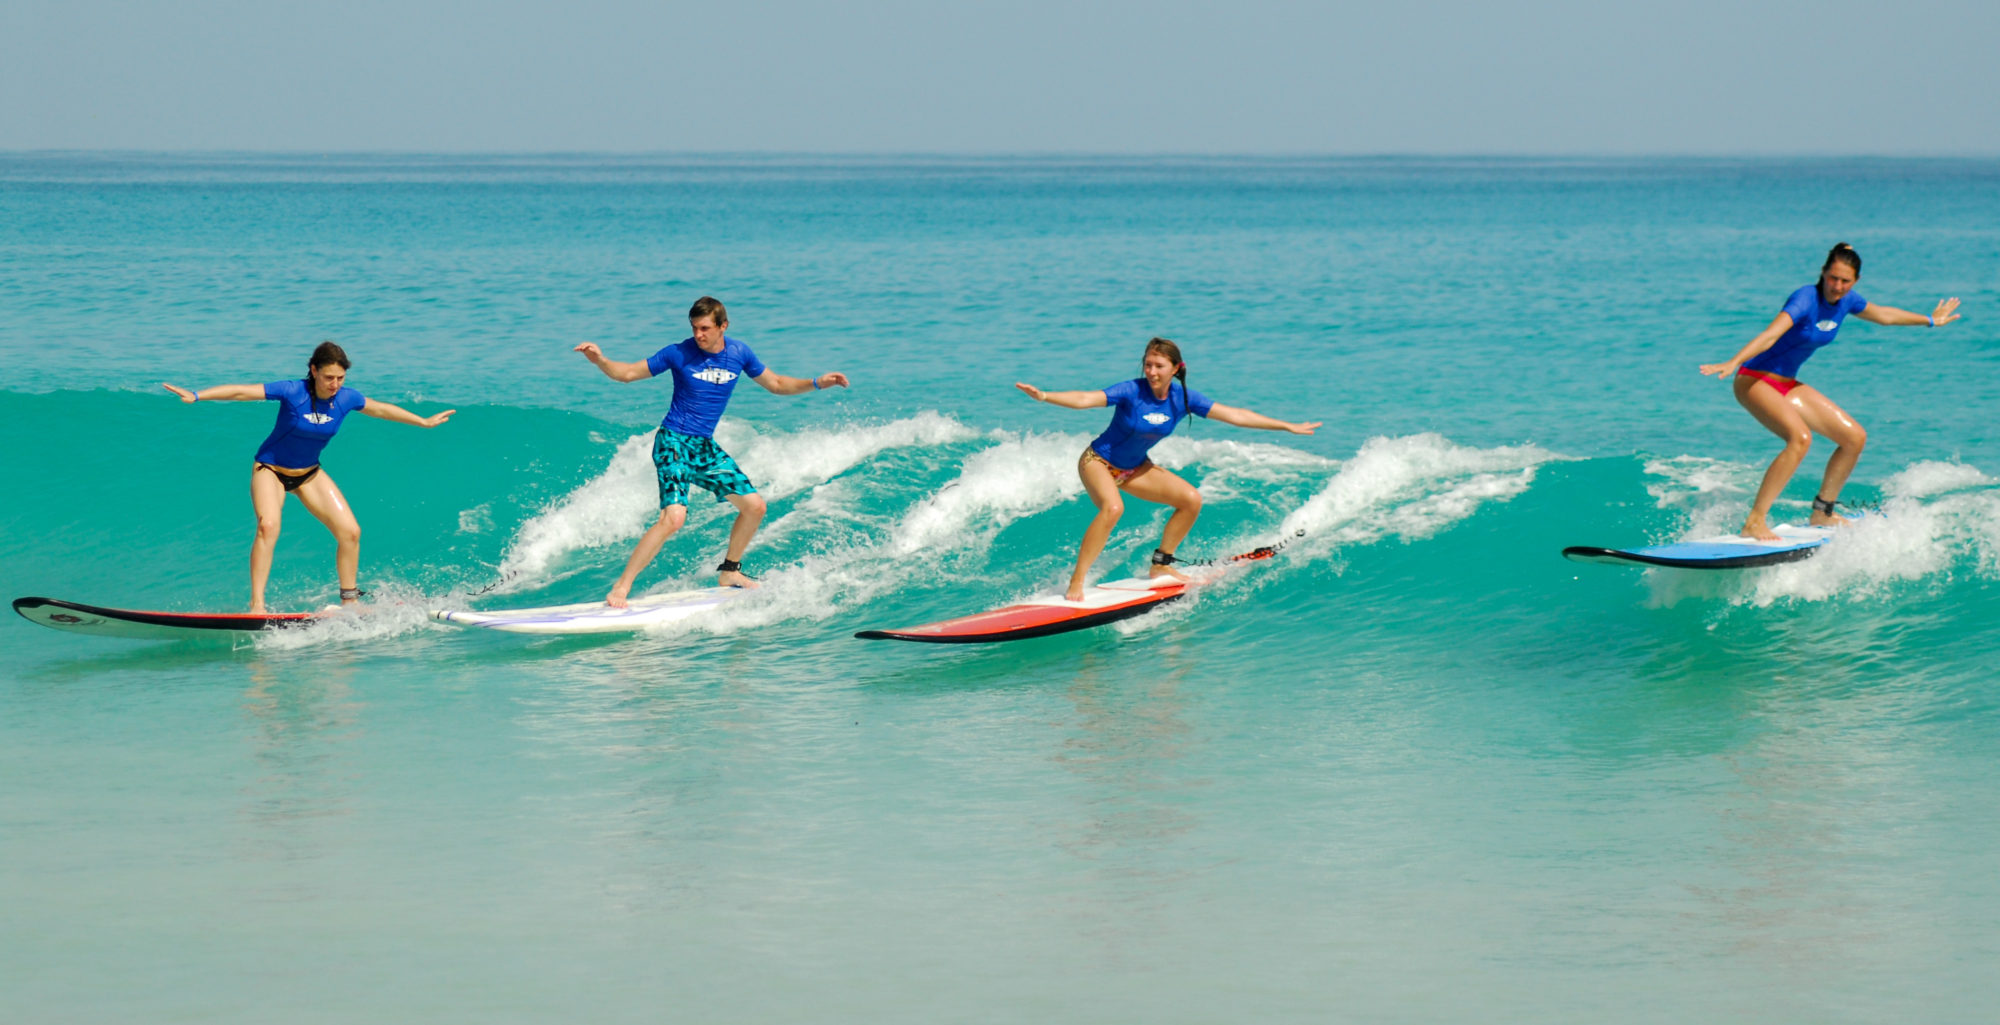 Sardinia Surfing Course: Learn to Surf in Sardinia, get Surfing Lessons in South of Sardinia